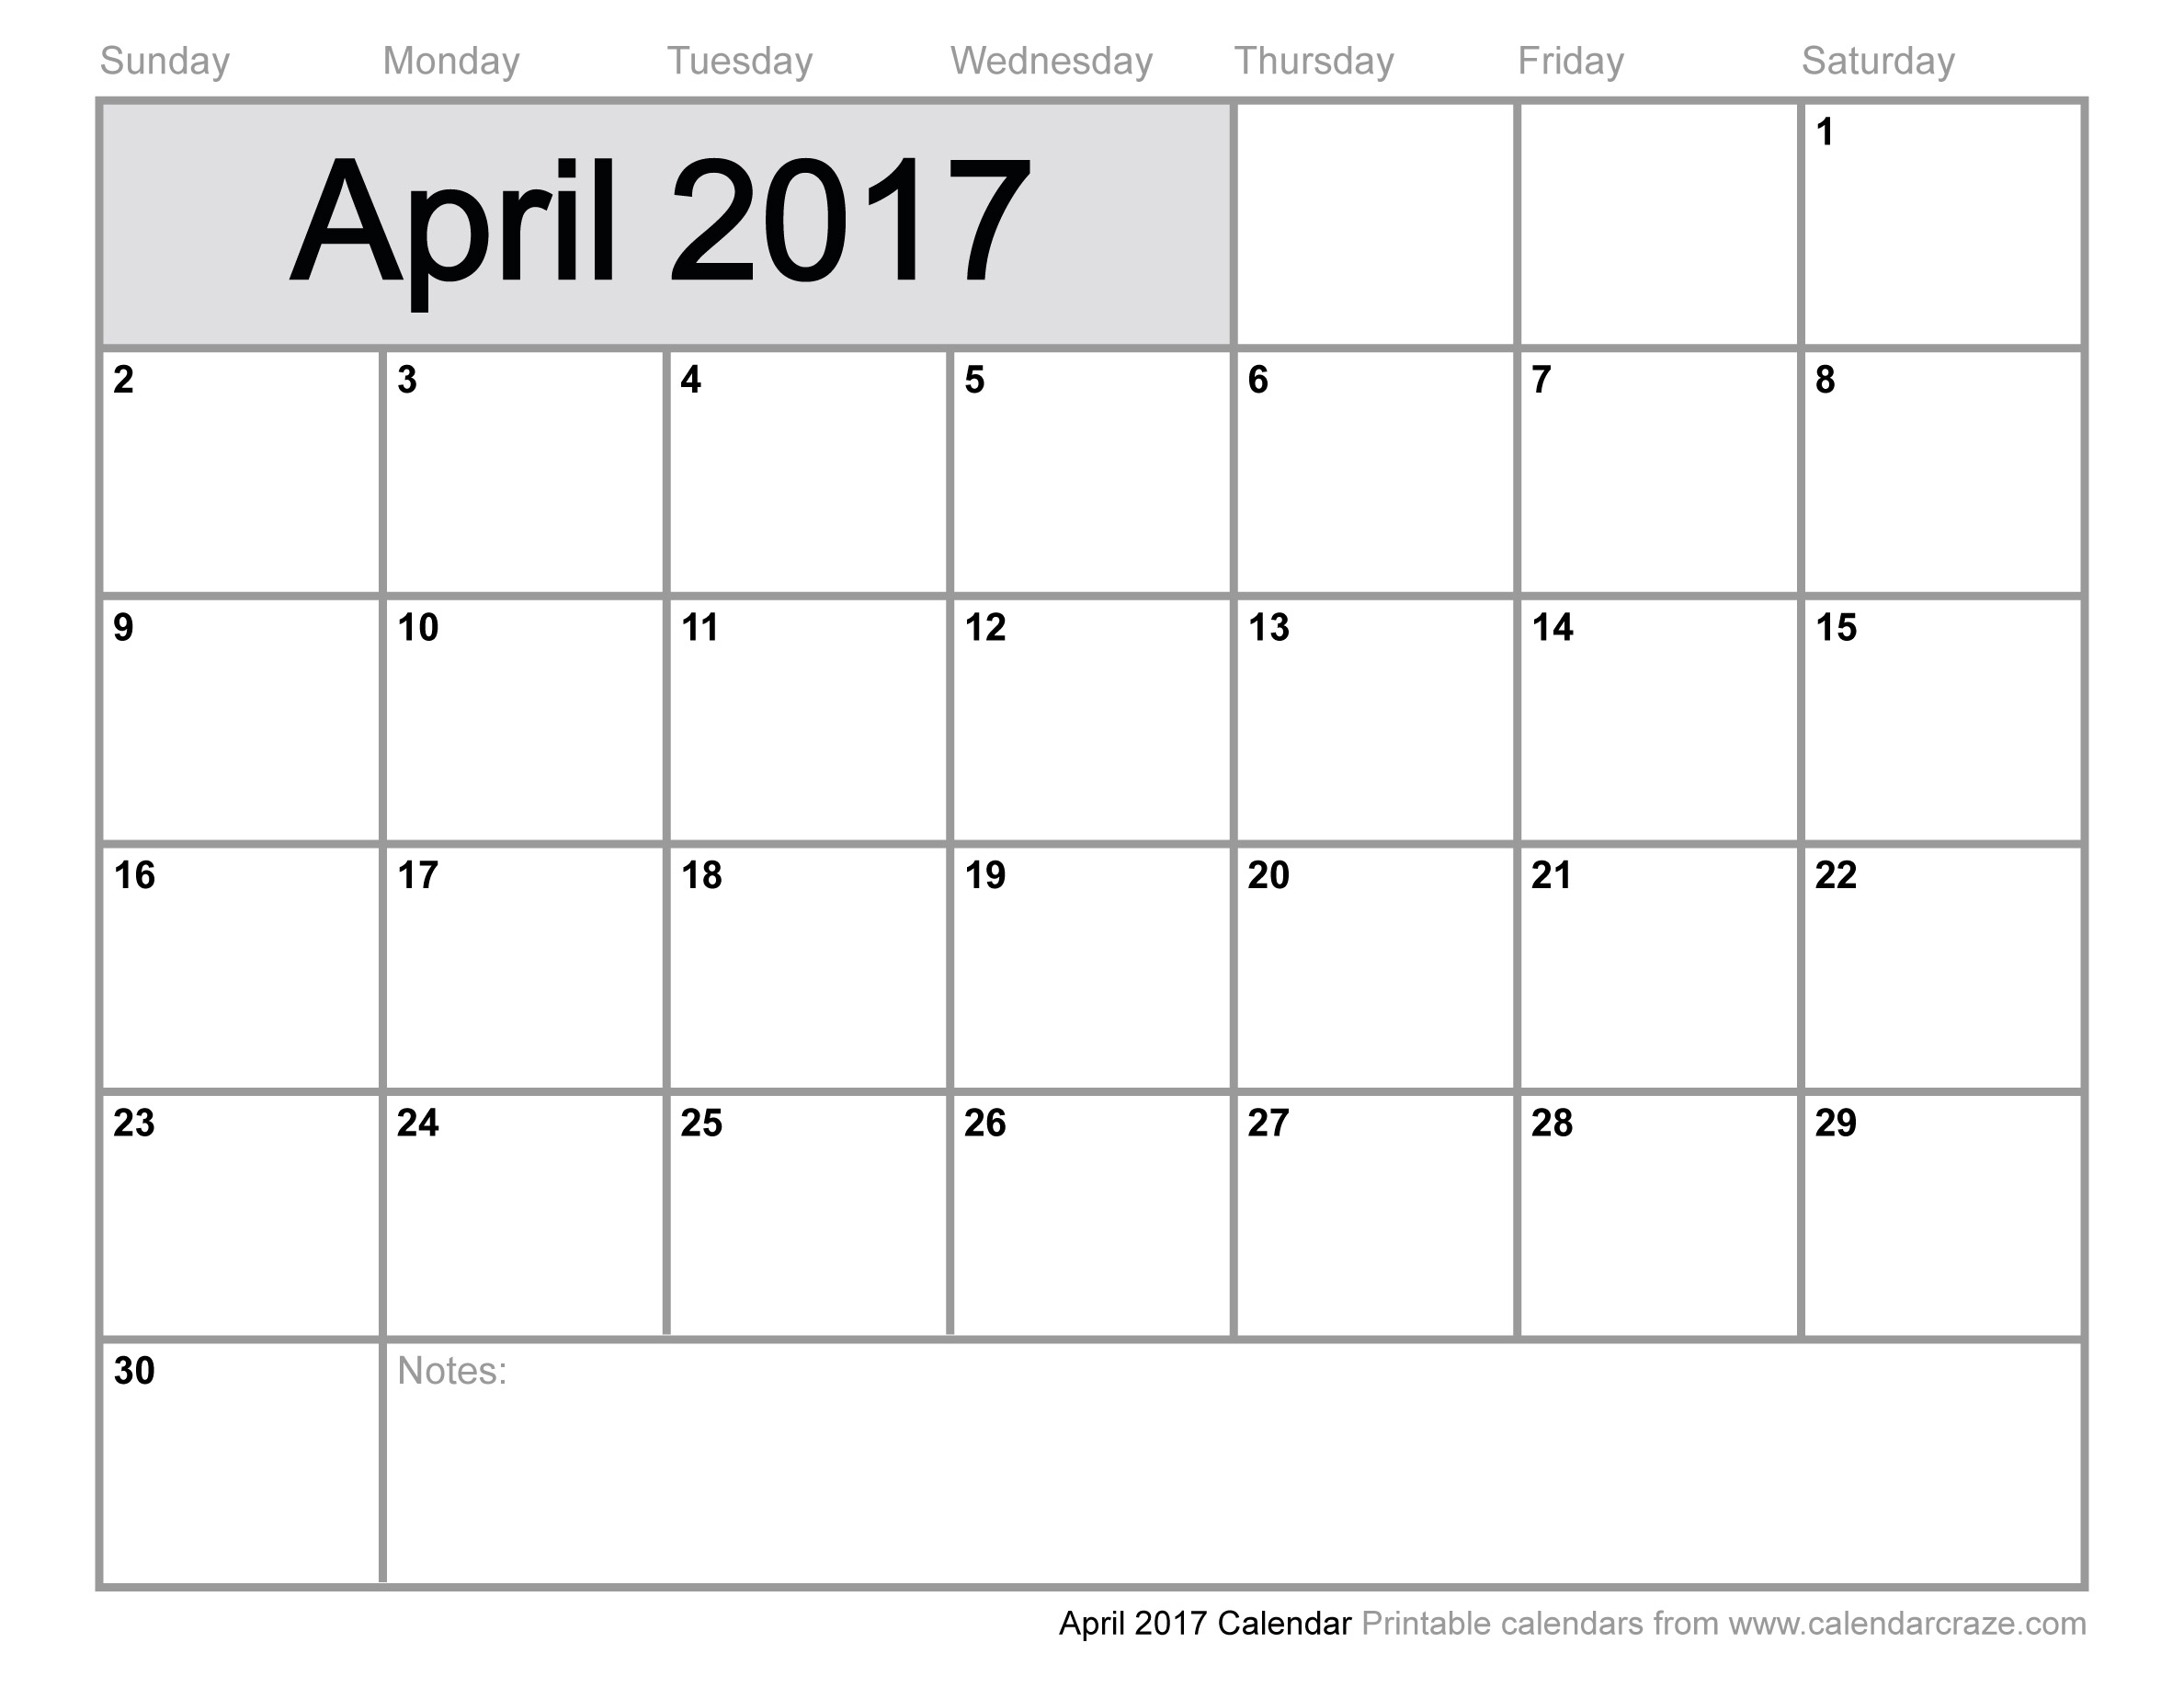 April 2017 Calendar Excel | yearly calendar printable